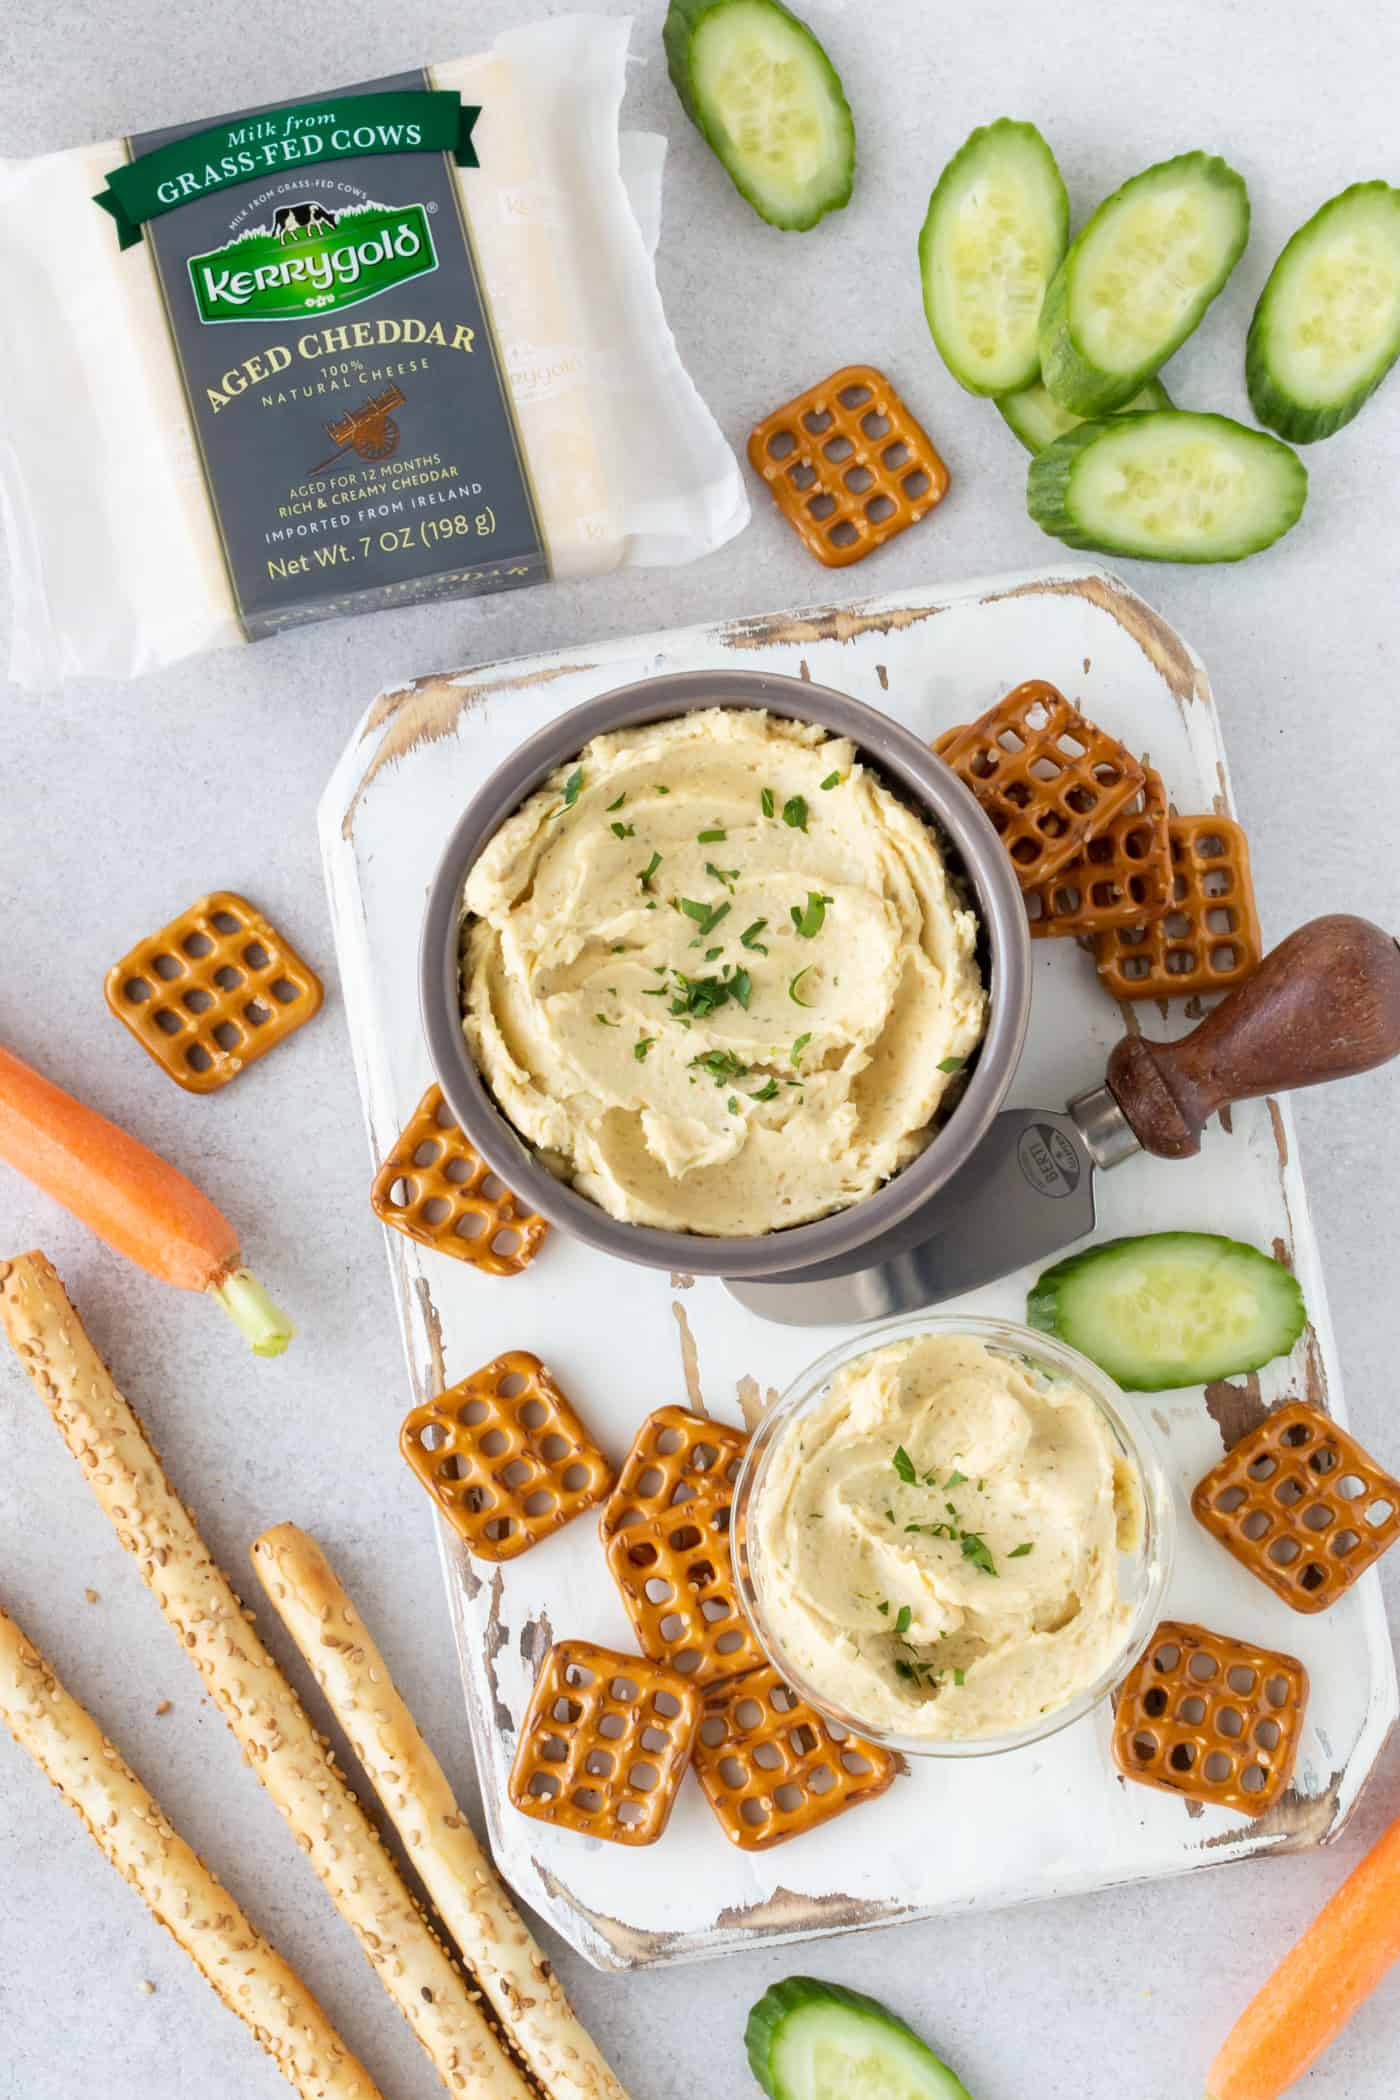 Small bowls of Irish Cheddar Pub Cheese surrounded by fresh cucumbers, carrots, crunchy breadsticks and pretzels.